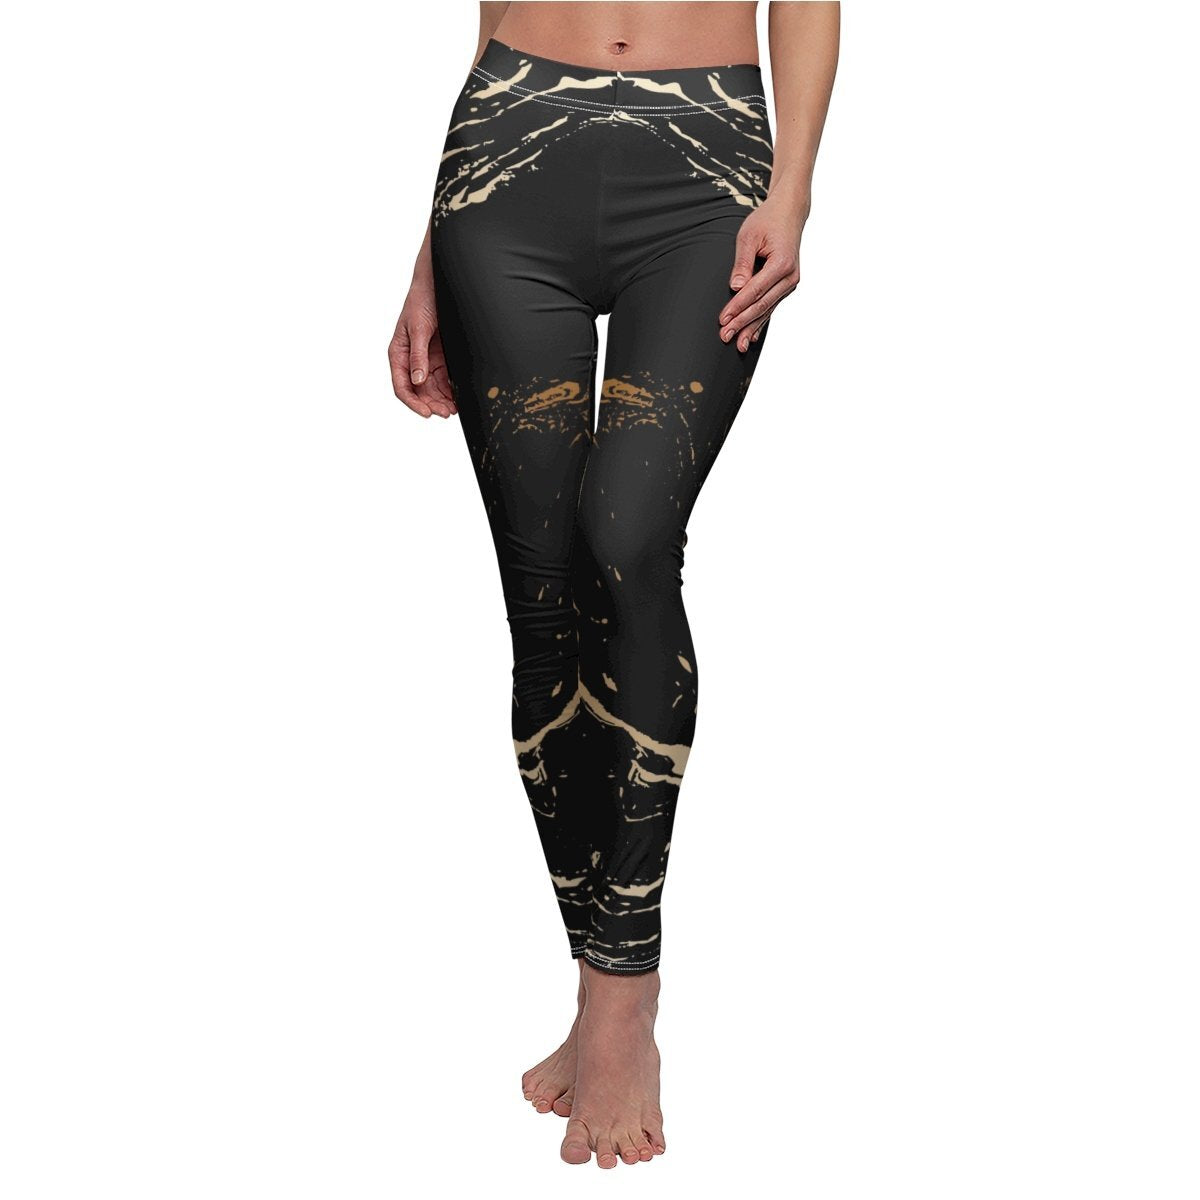 High Waisted Yoga Pants, Black and Gold Swirl Style Sports Pants